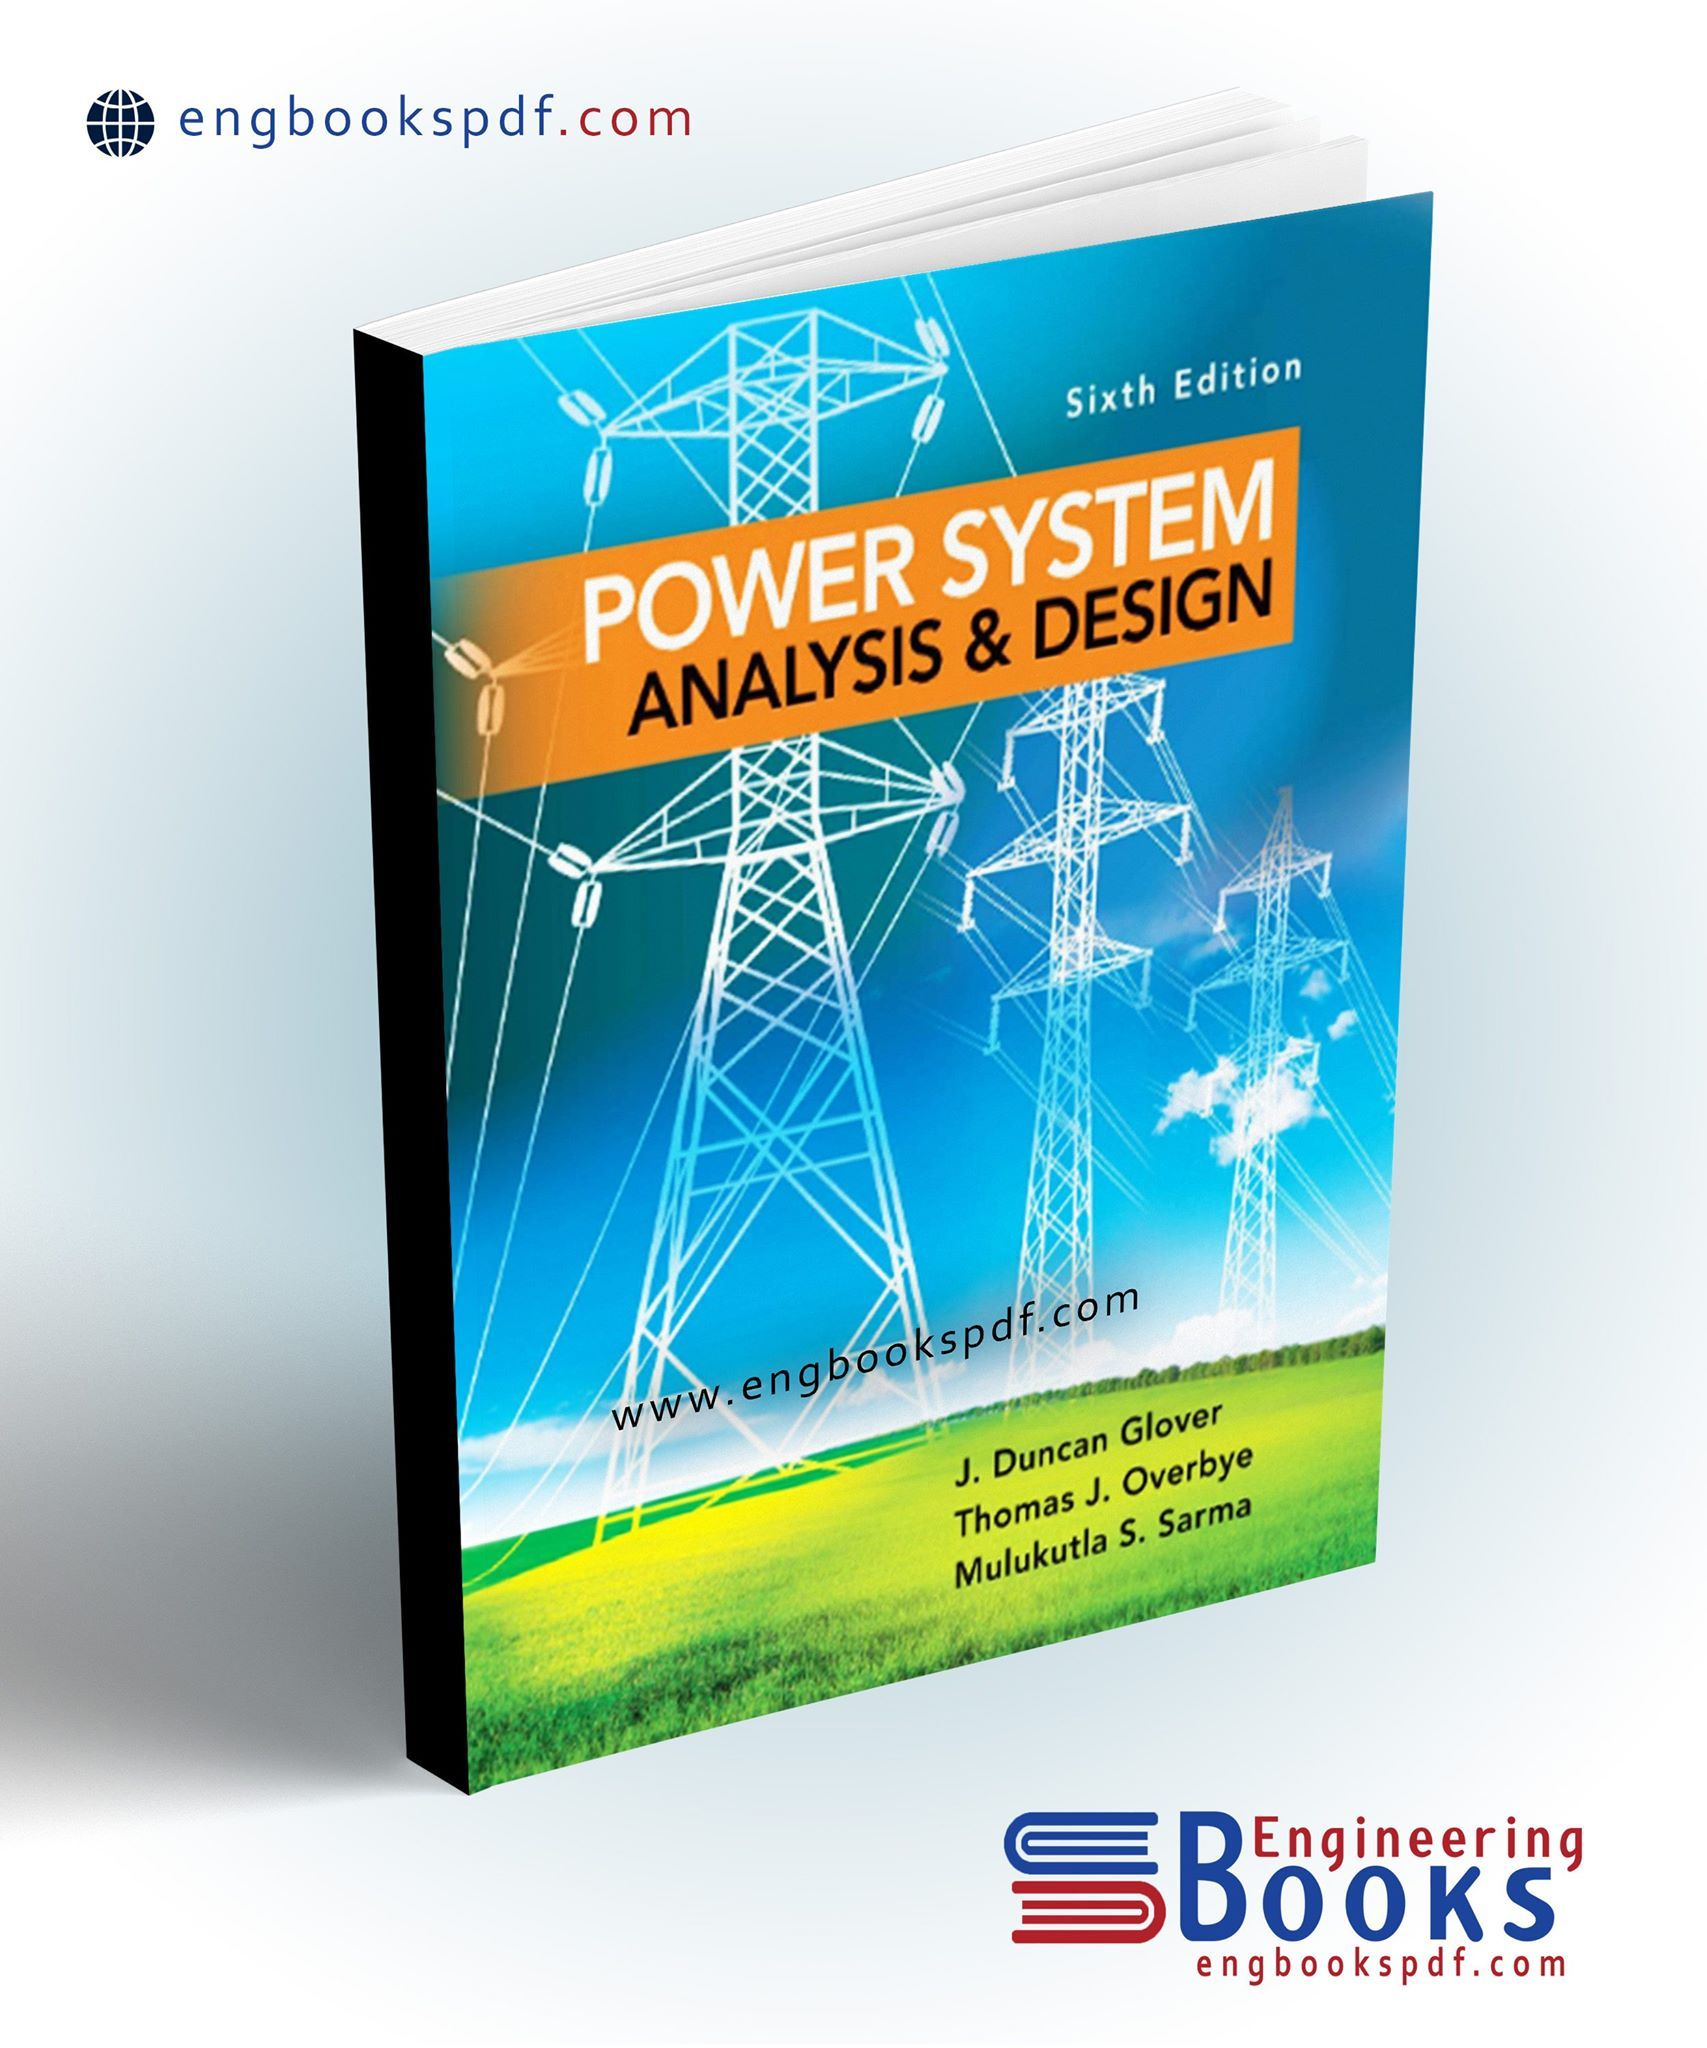 Power System Analysis And Design By J Duncan Glover Analysis Lectures Notes System